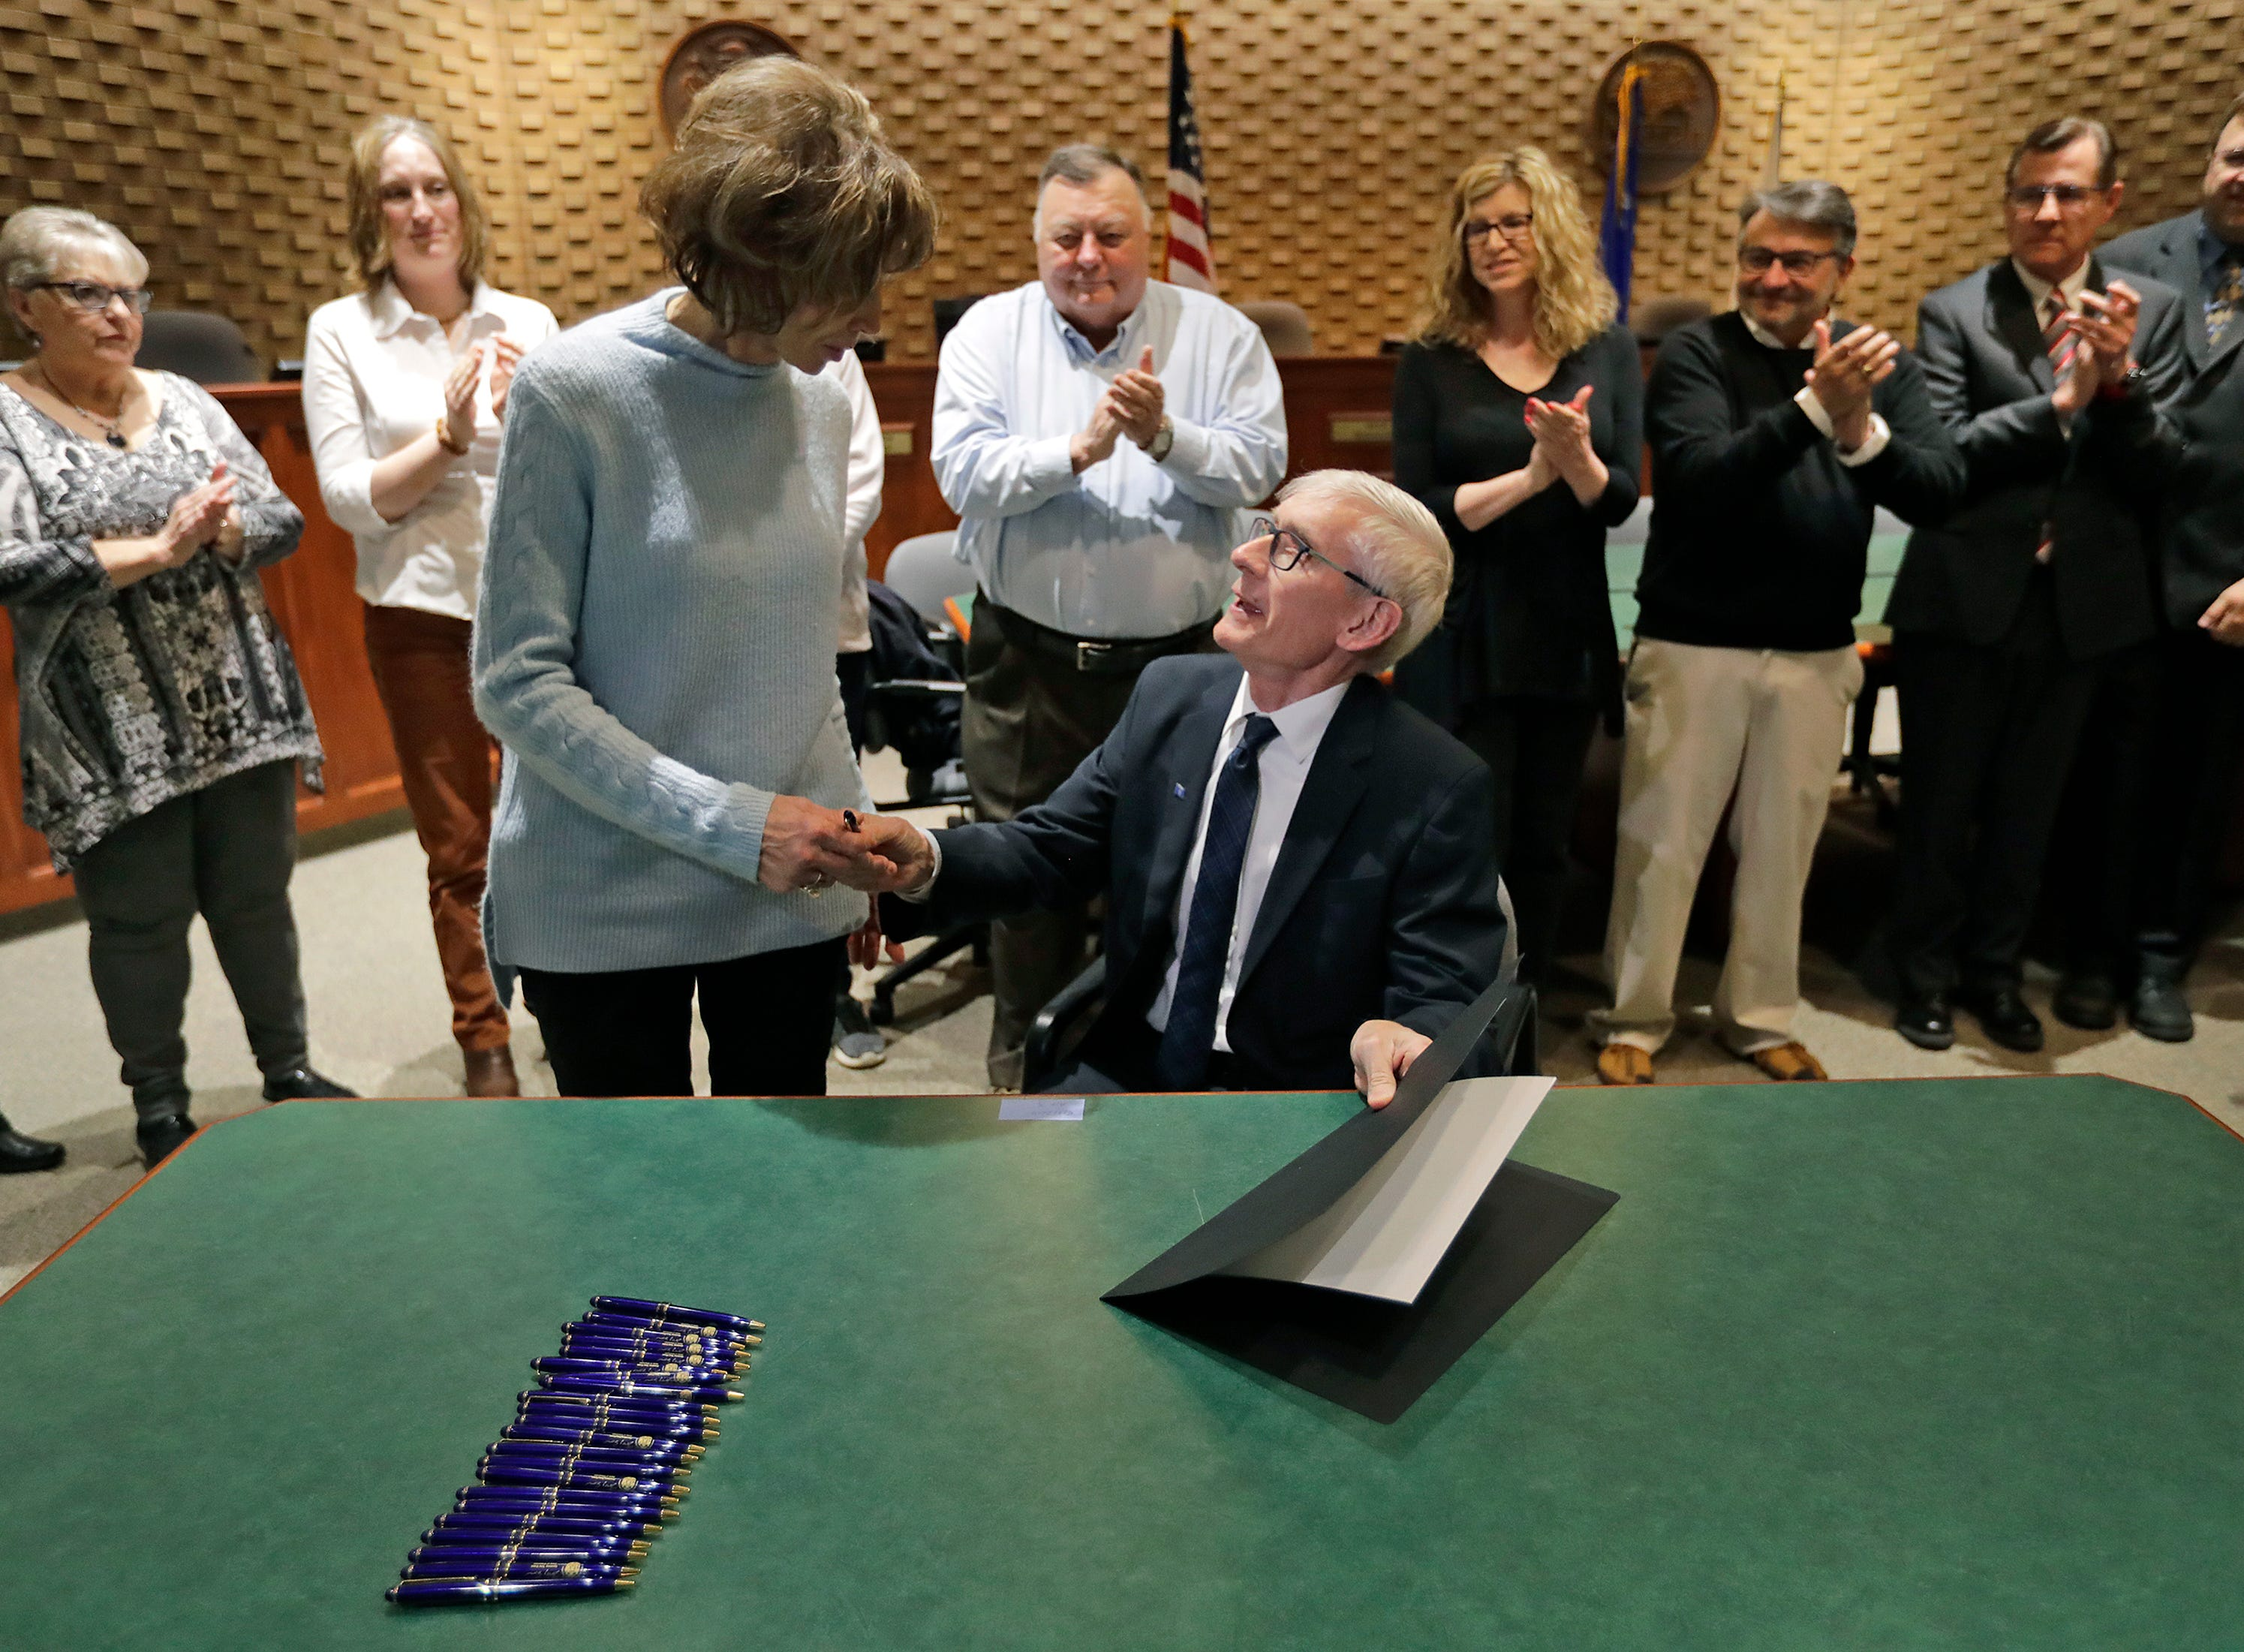 Gov. Tony Evers shakes hands with Sandy Ellis after he signs a bill naming the Interstate 41-U.S.10 interchange after the late Michael G. Ellis Wednesday, May 1, 2019, at Neenah City Hall in Neenah, Wis. Sandy is the widow of Michael G. Ellis. The two are surrounded by family members and officials.Dan Powers/USA TODAY NETWORK-Wisconsin